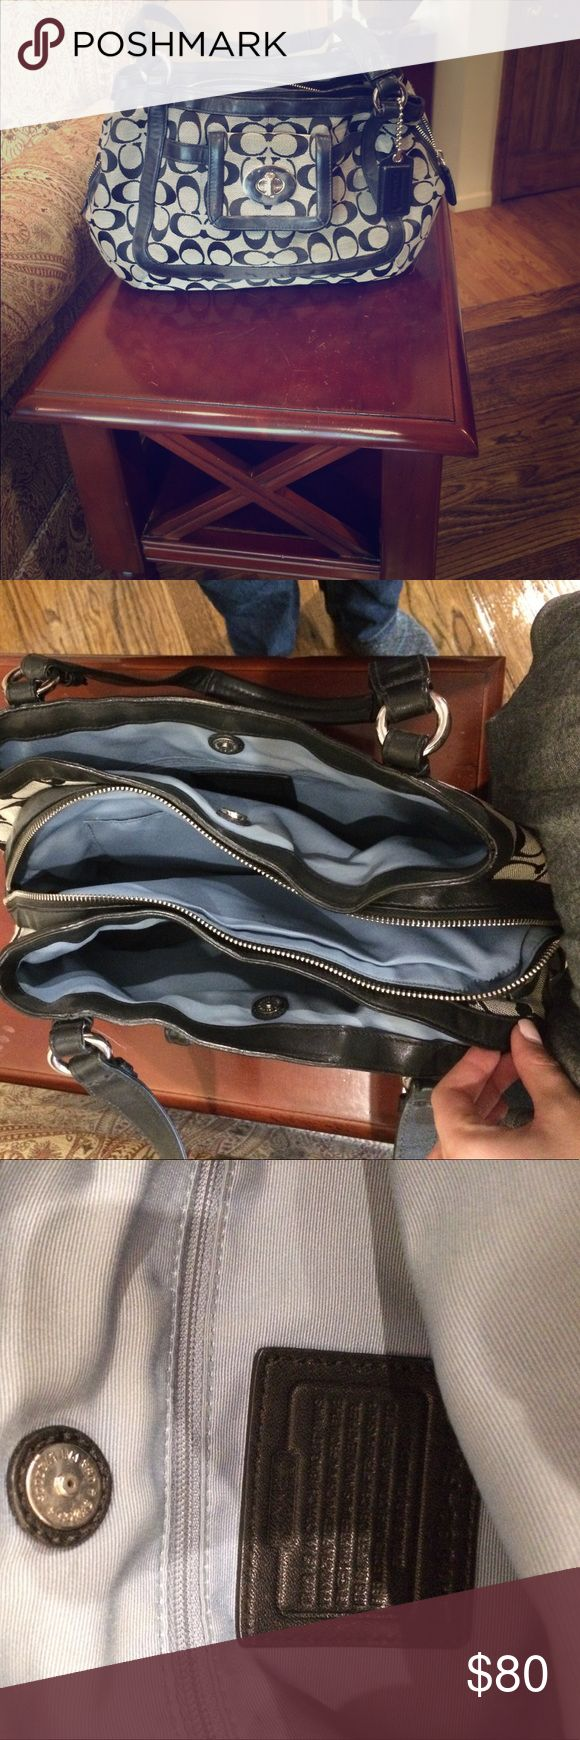 Coach pocketbook, black outside and blue lining Coach pocketbook with tons of storage! 3 pockets of storage, blue lining, and black exterior. Good condition Coach Bags Shoulder Bags